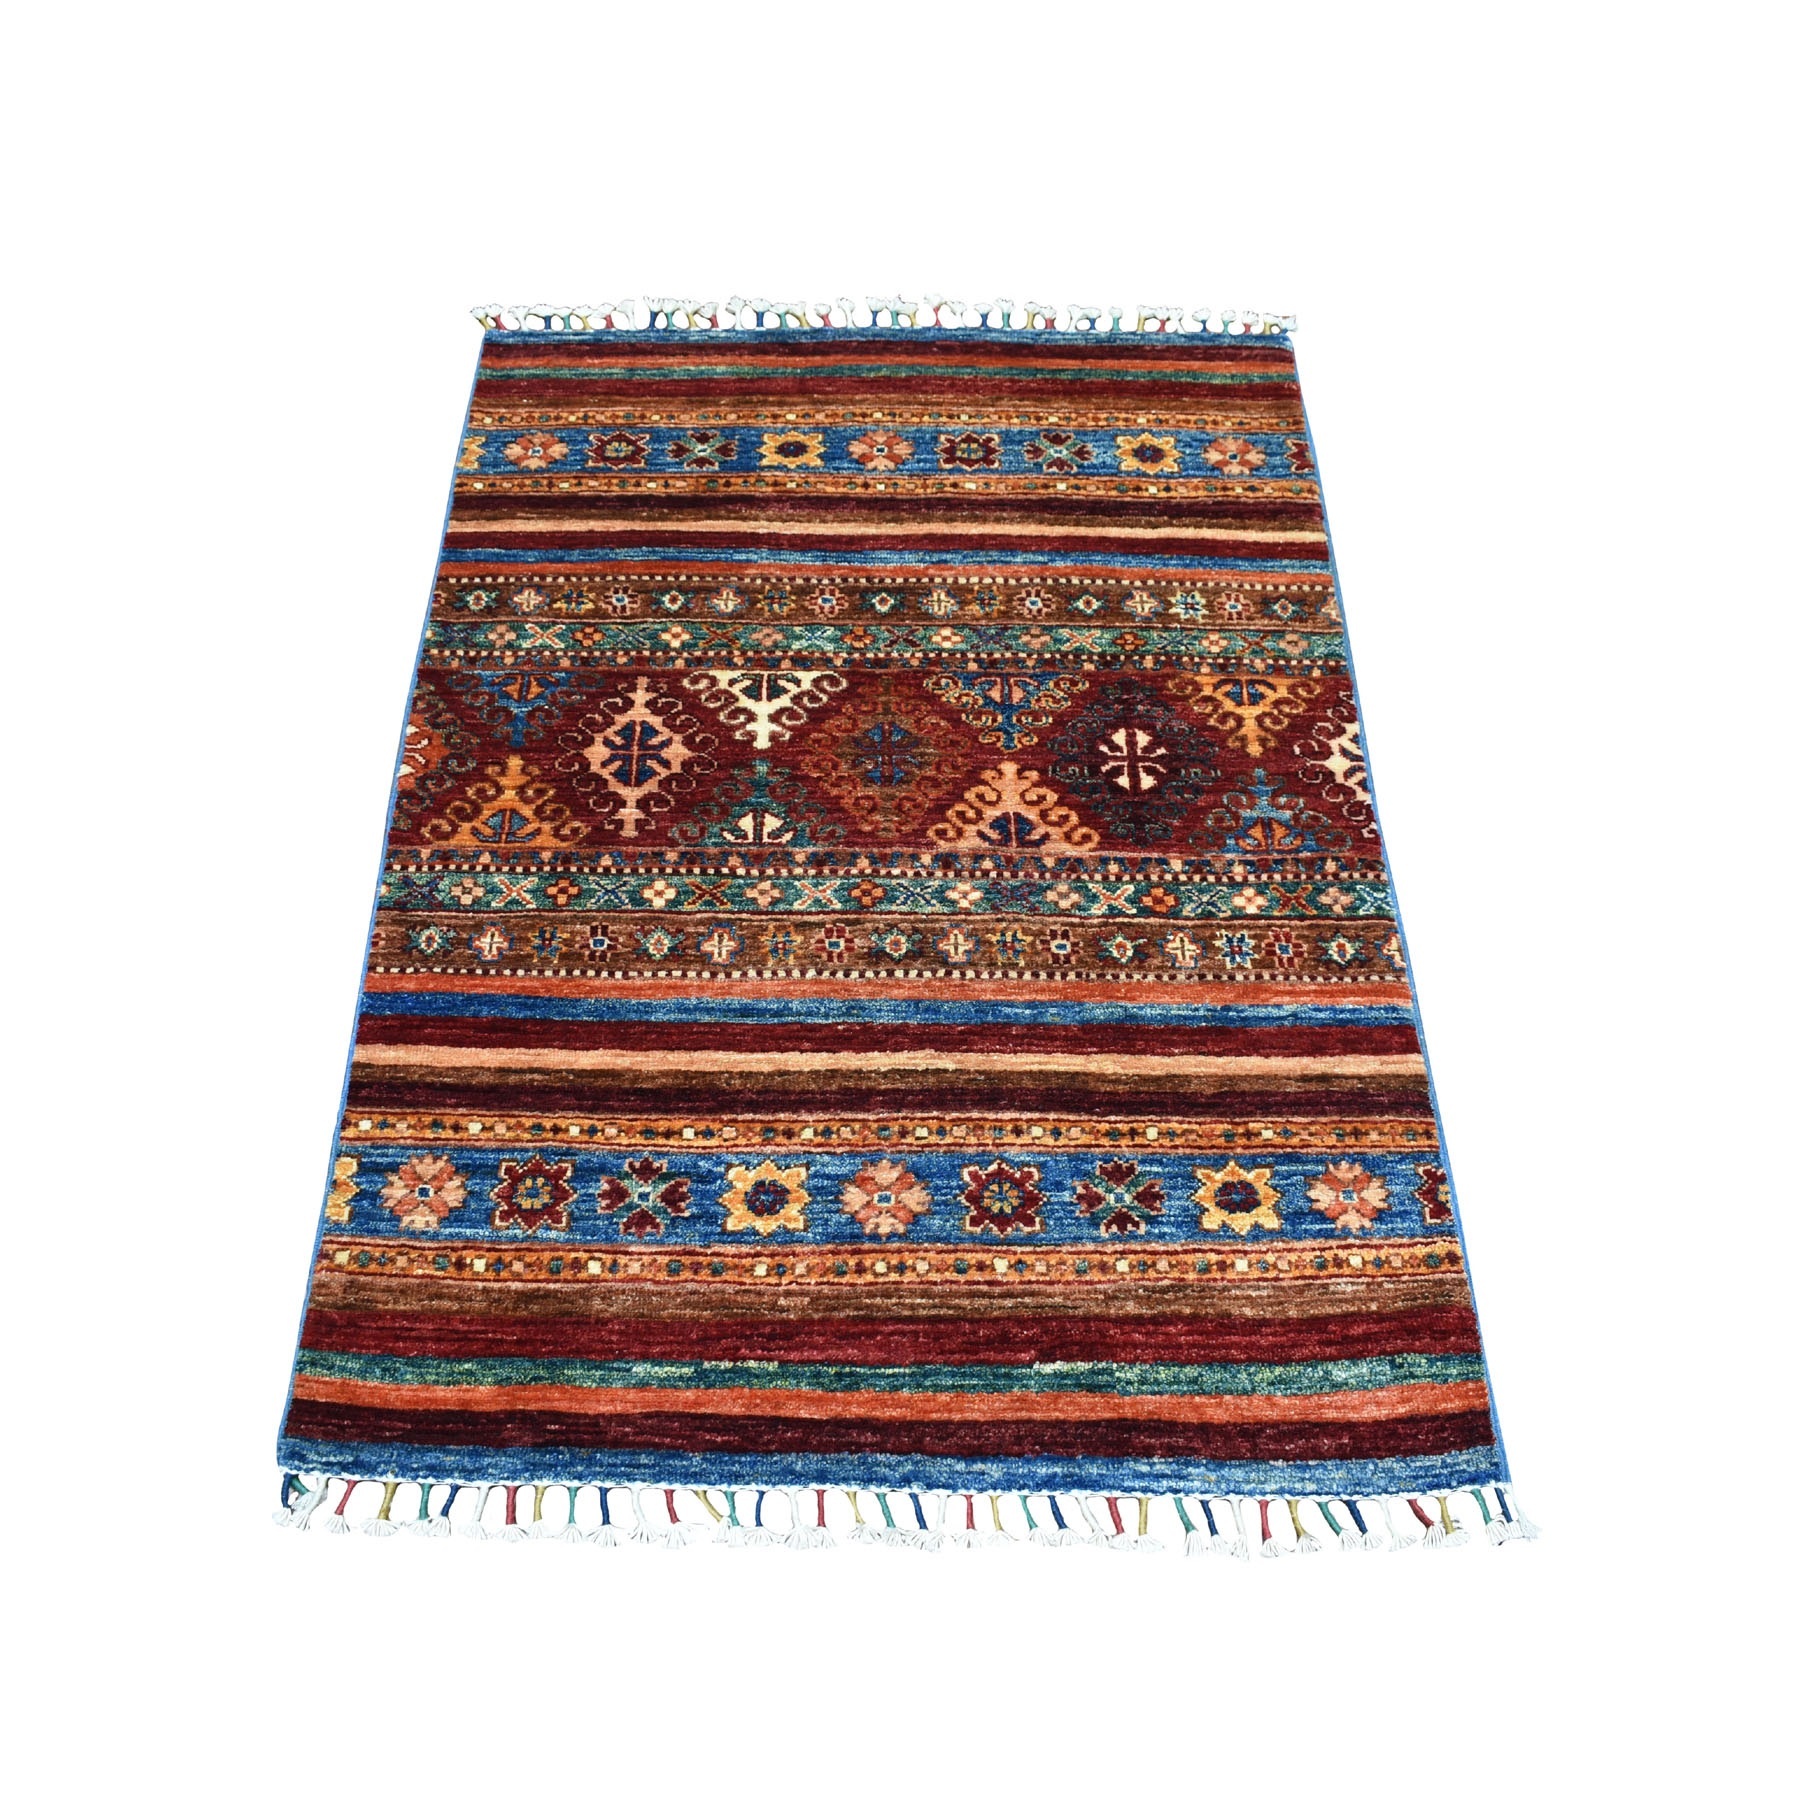 Caucasian Collection Hand Knotted Multicolored Rug No: 01104642